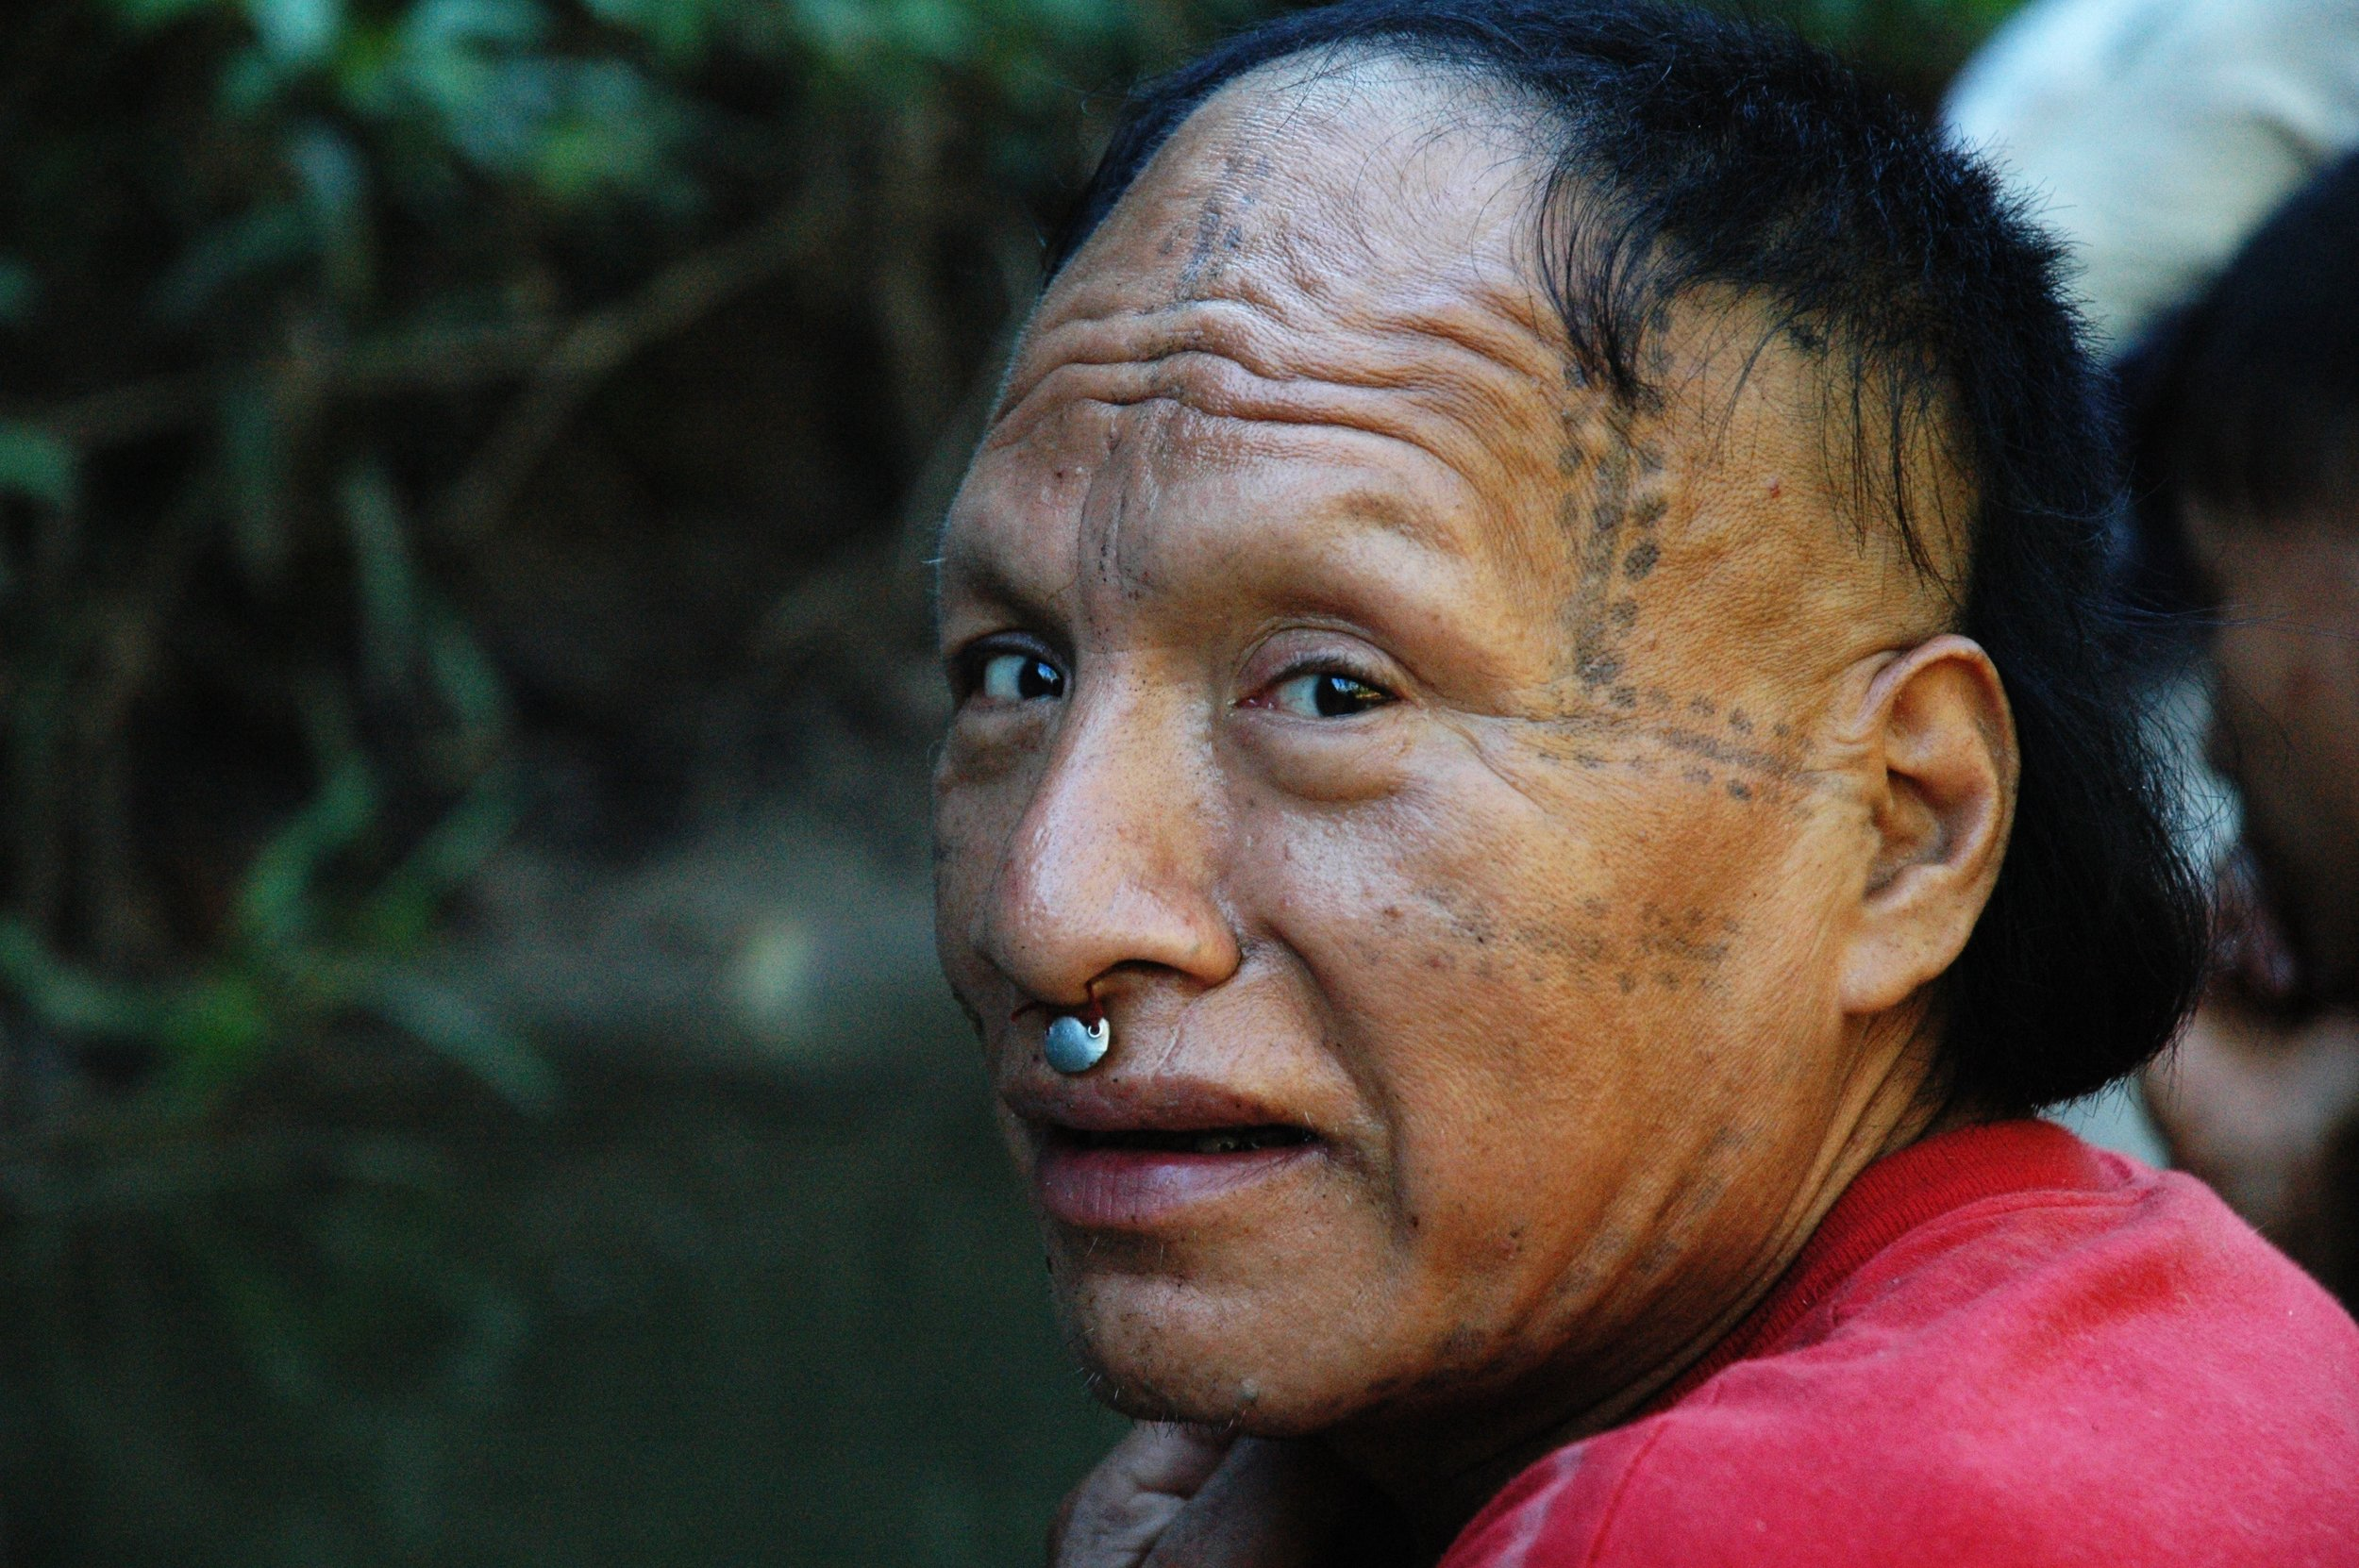 The Guardian - 8 things to know about Channel 4's 'Lost Tribe of the Amazon'